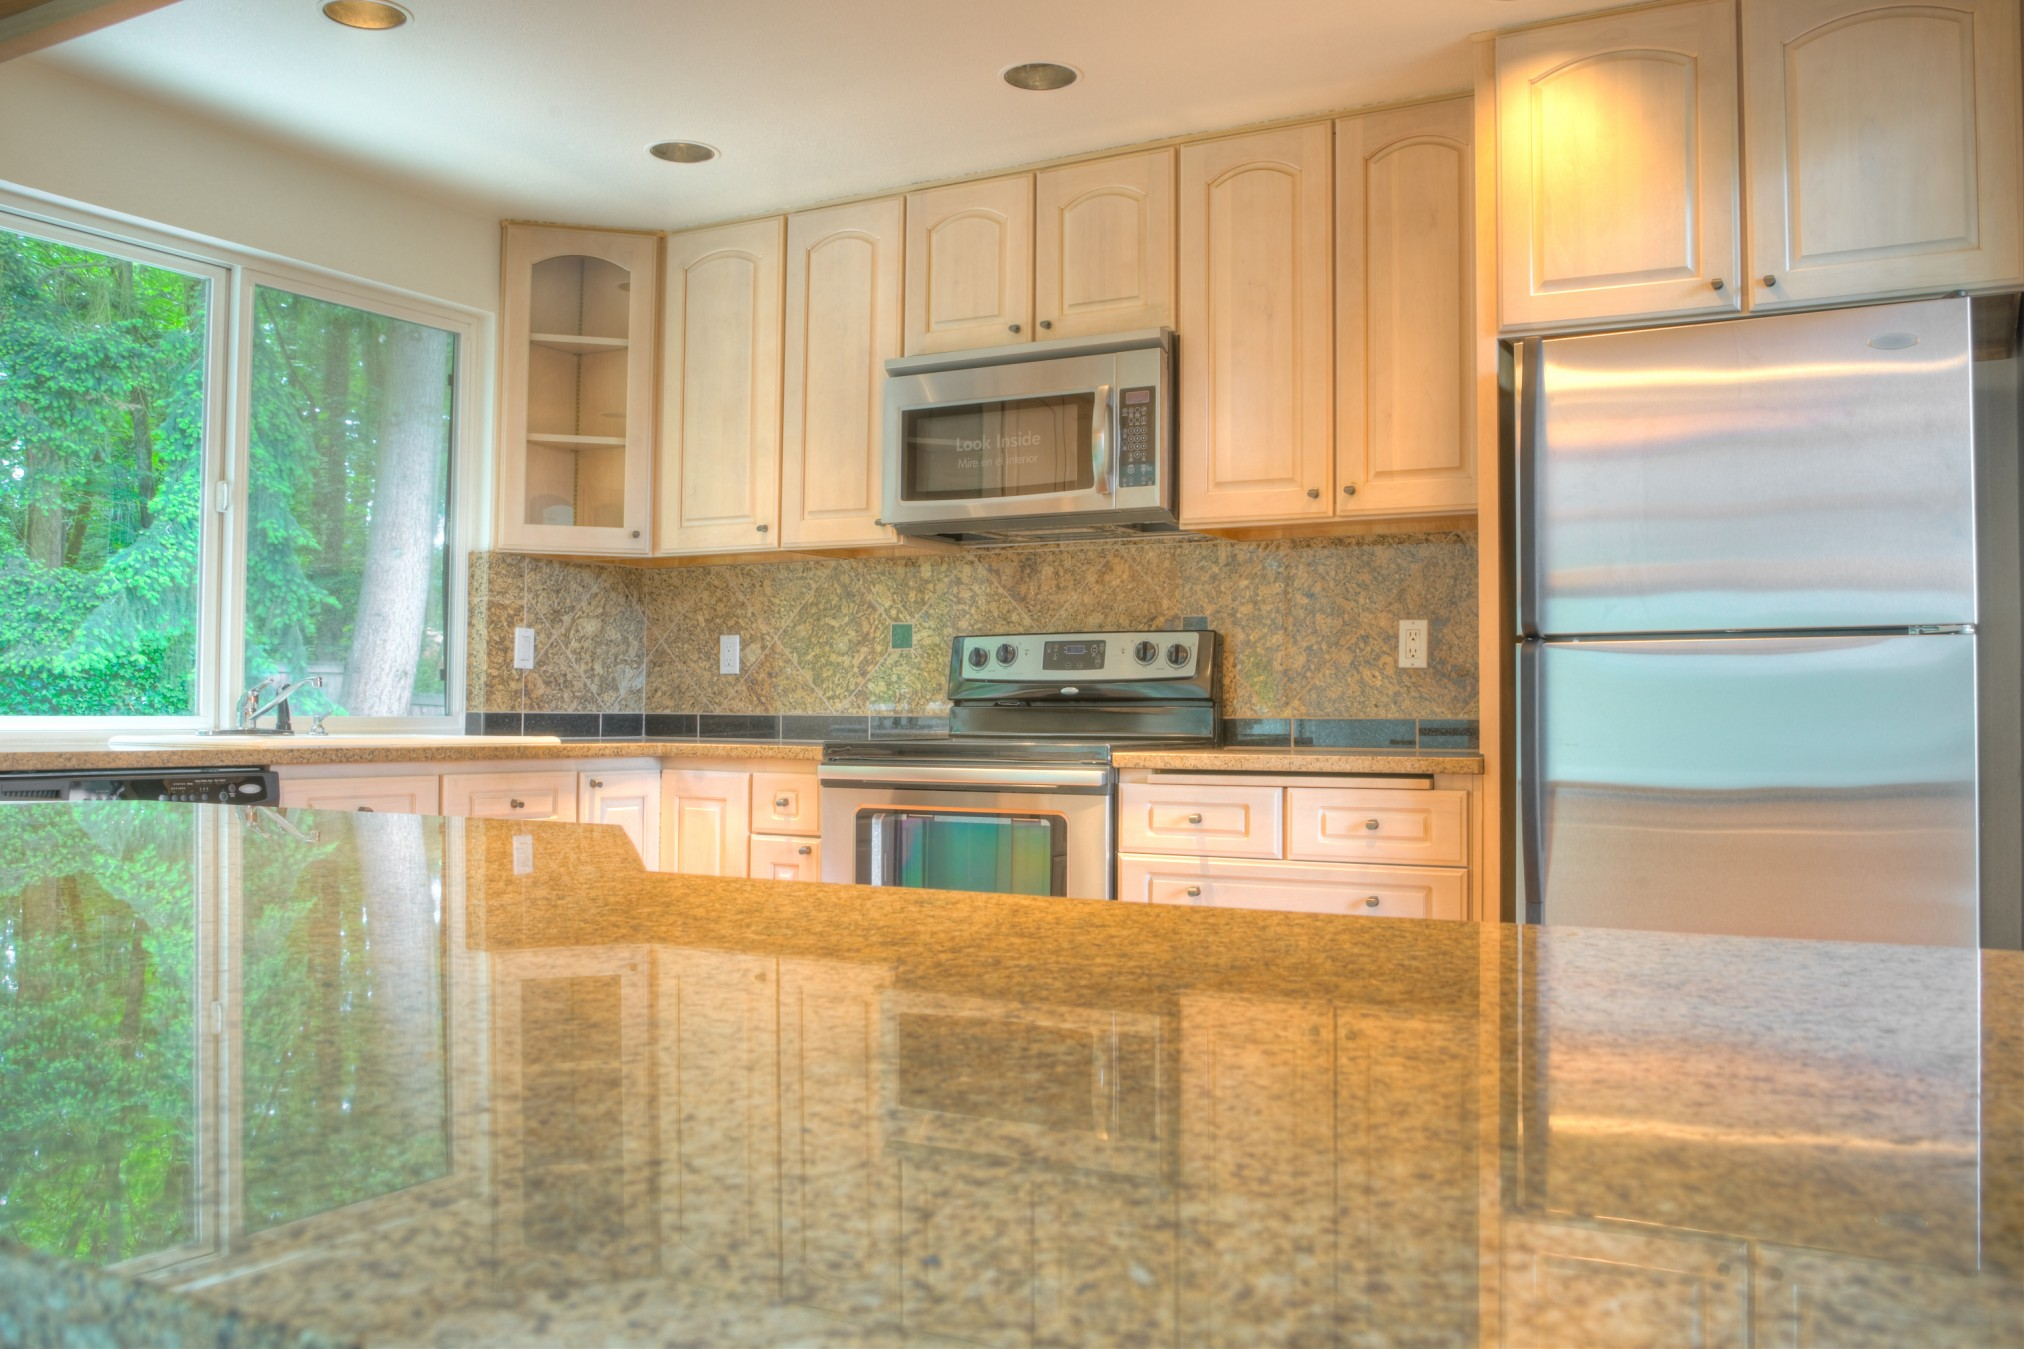 countertops go n already obsession care huffpost to countertop reasons quartz let original the alternatives of granite